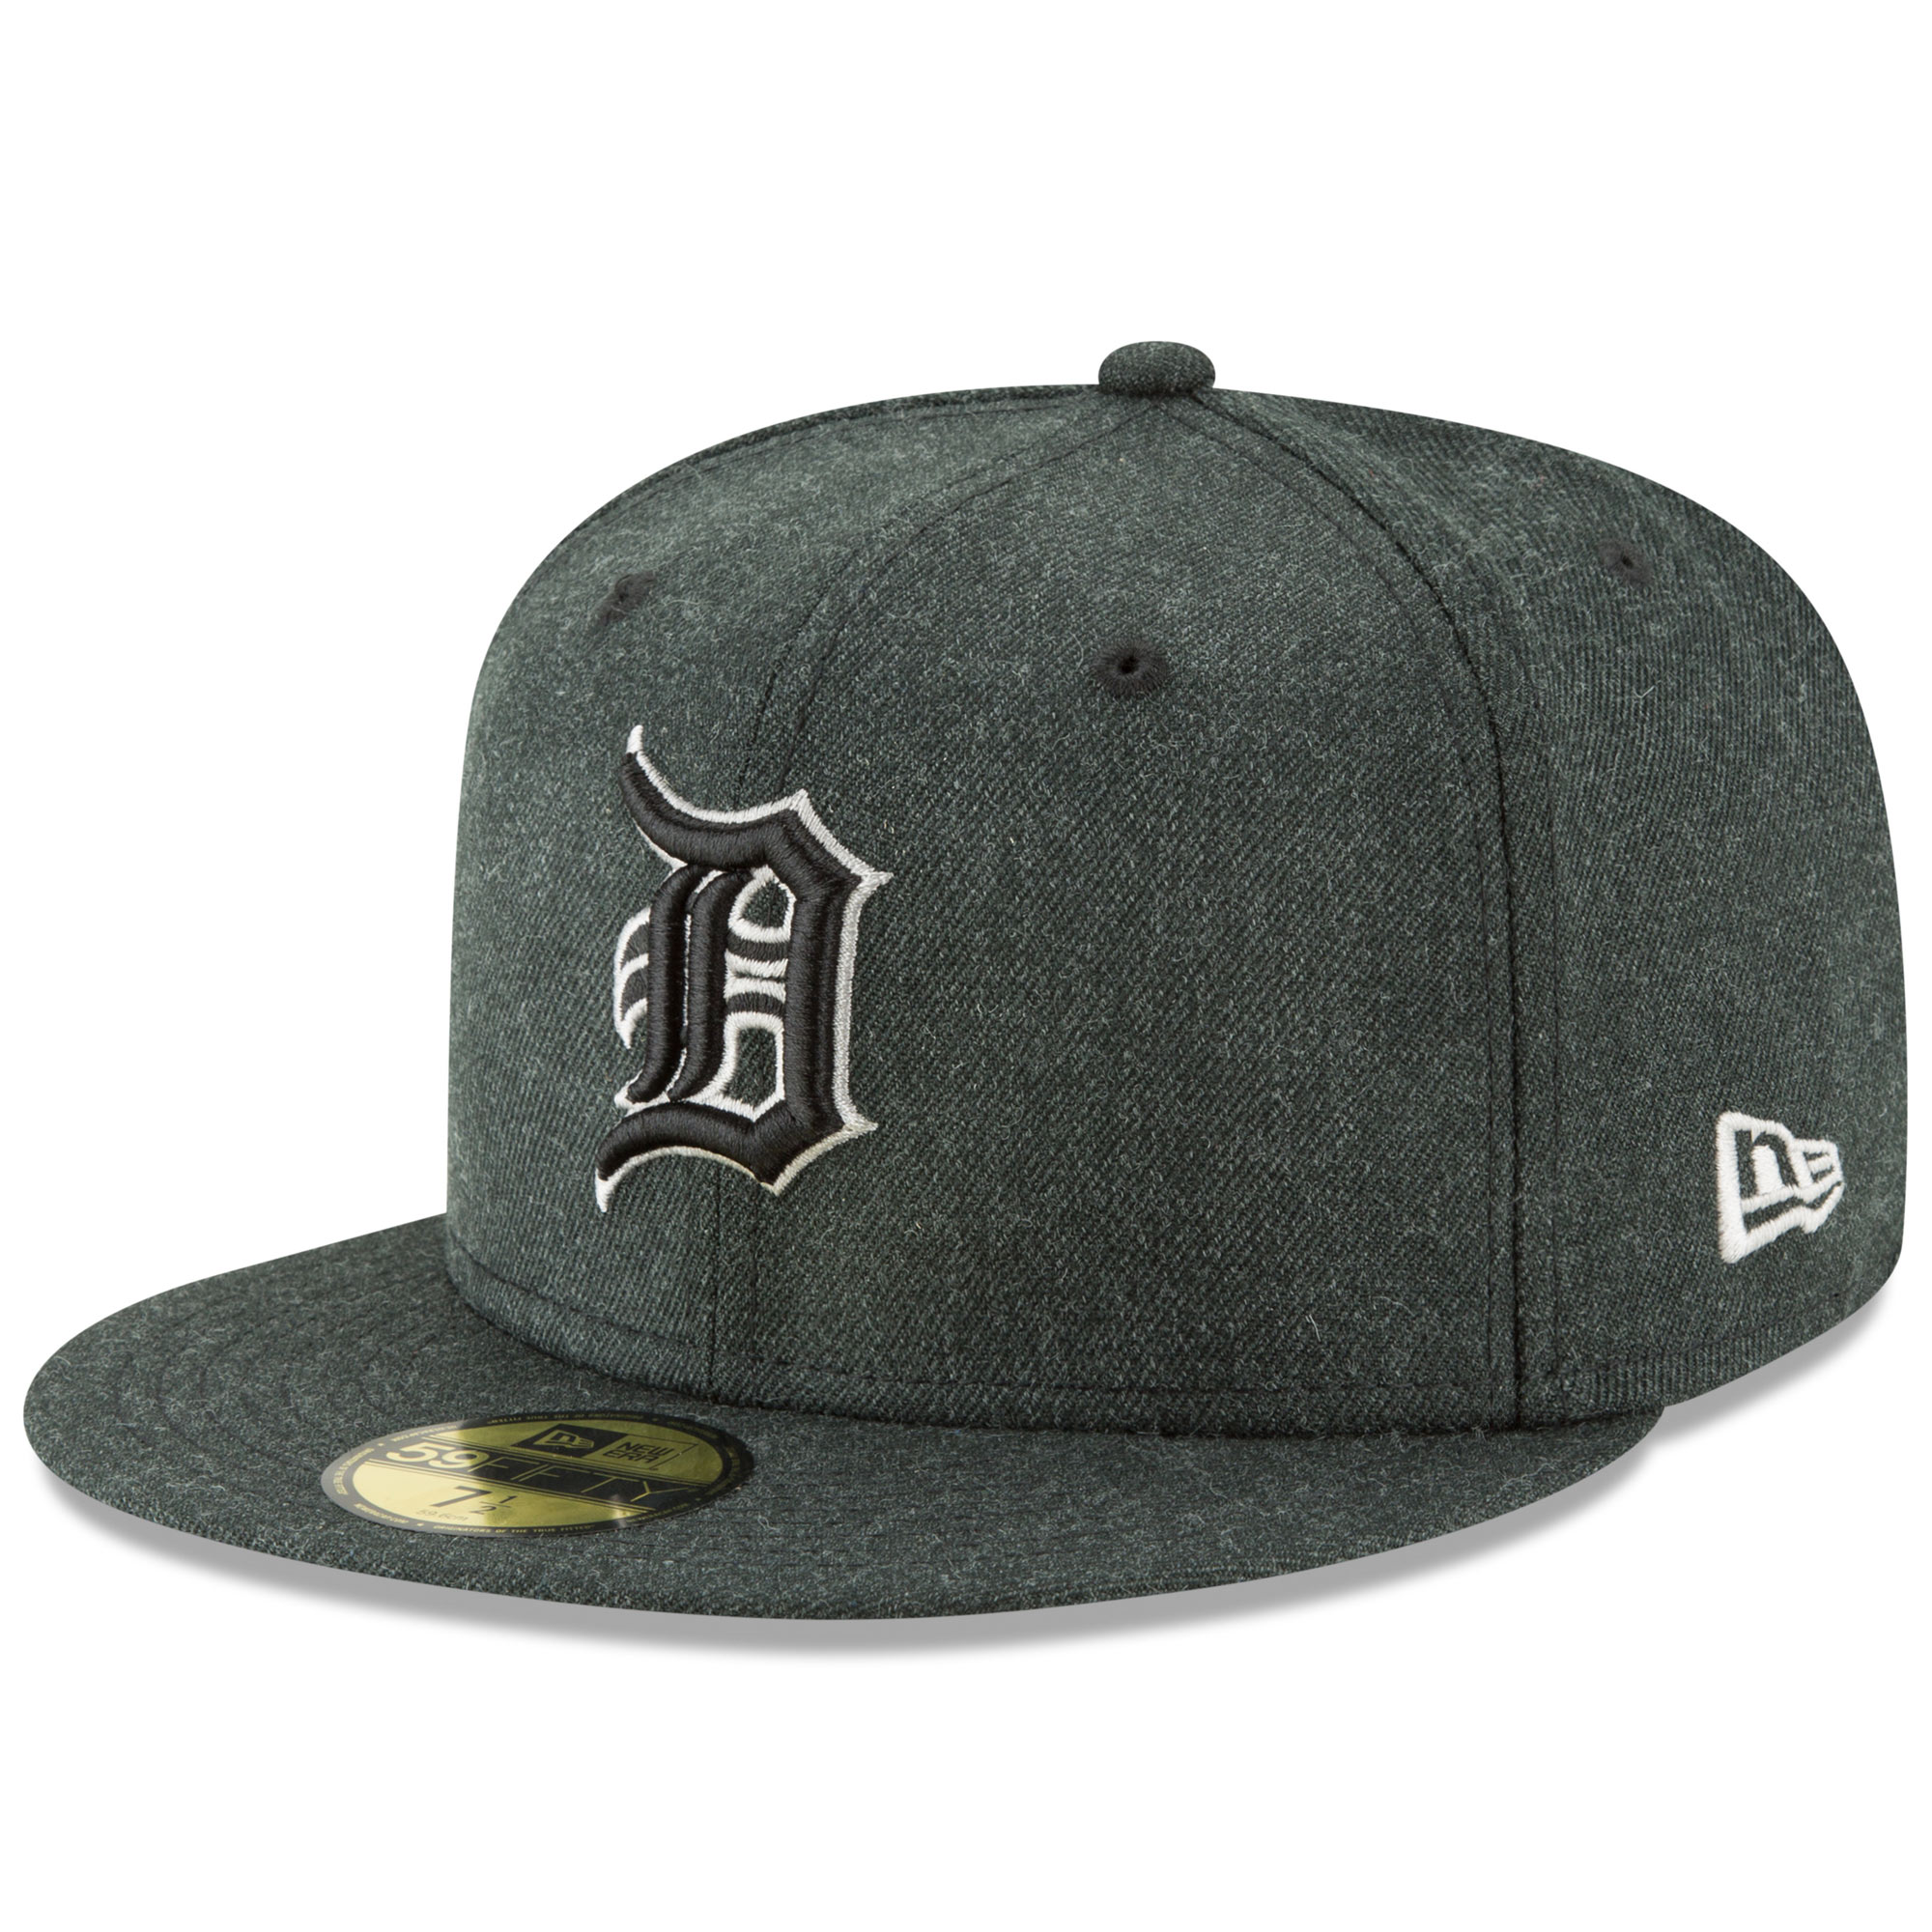 Men's New Era Heathered Black Detroit Tigers Bold 59FIFTY Fitted Hat